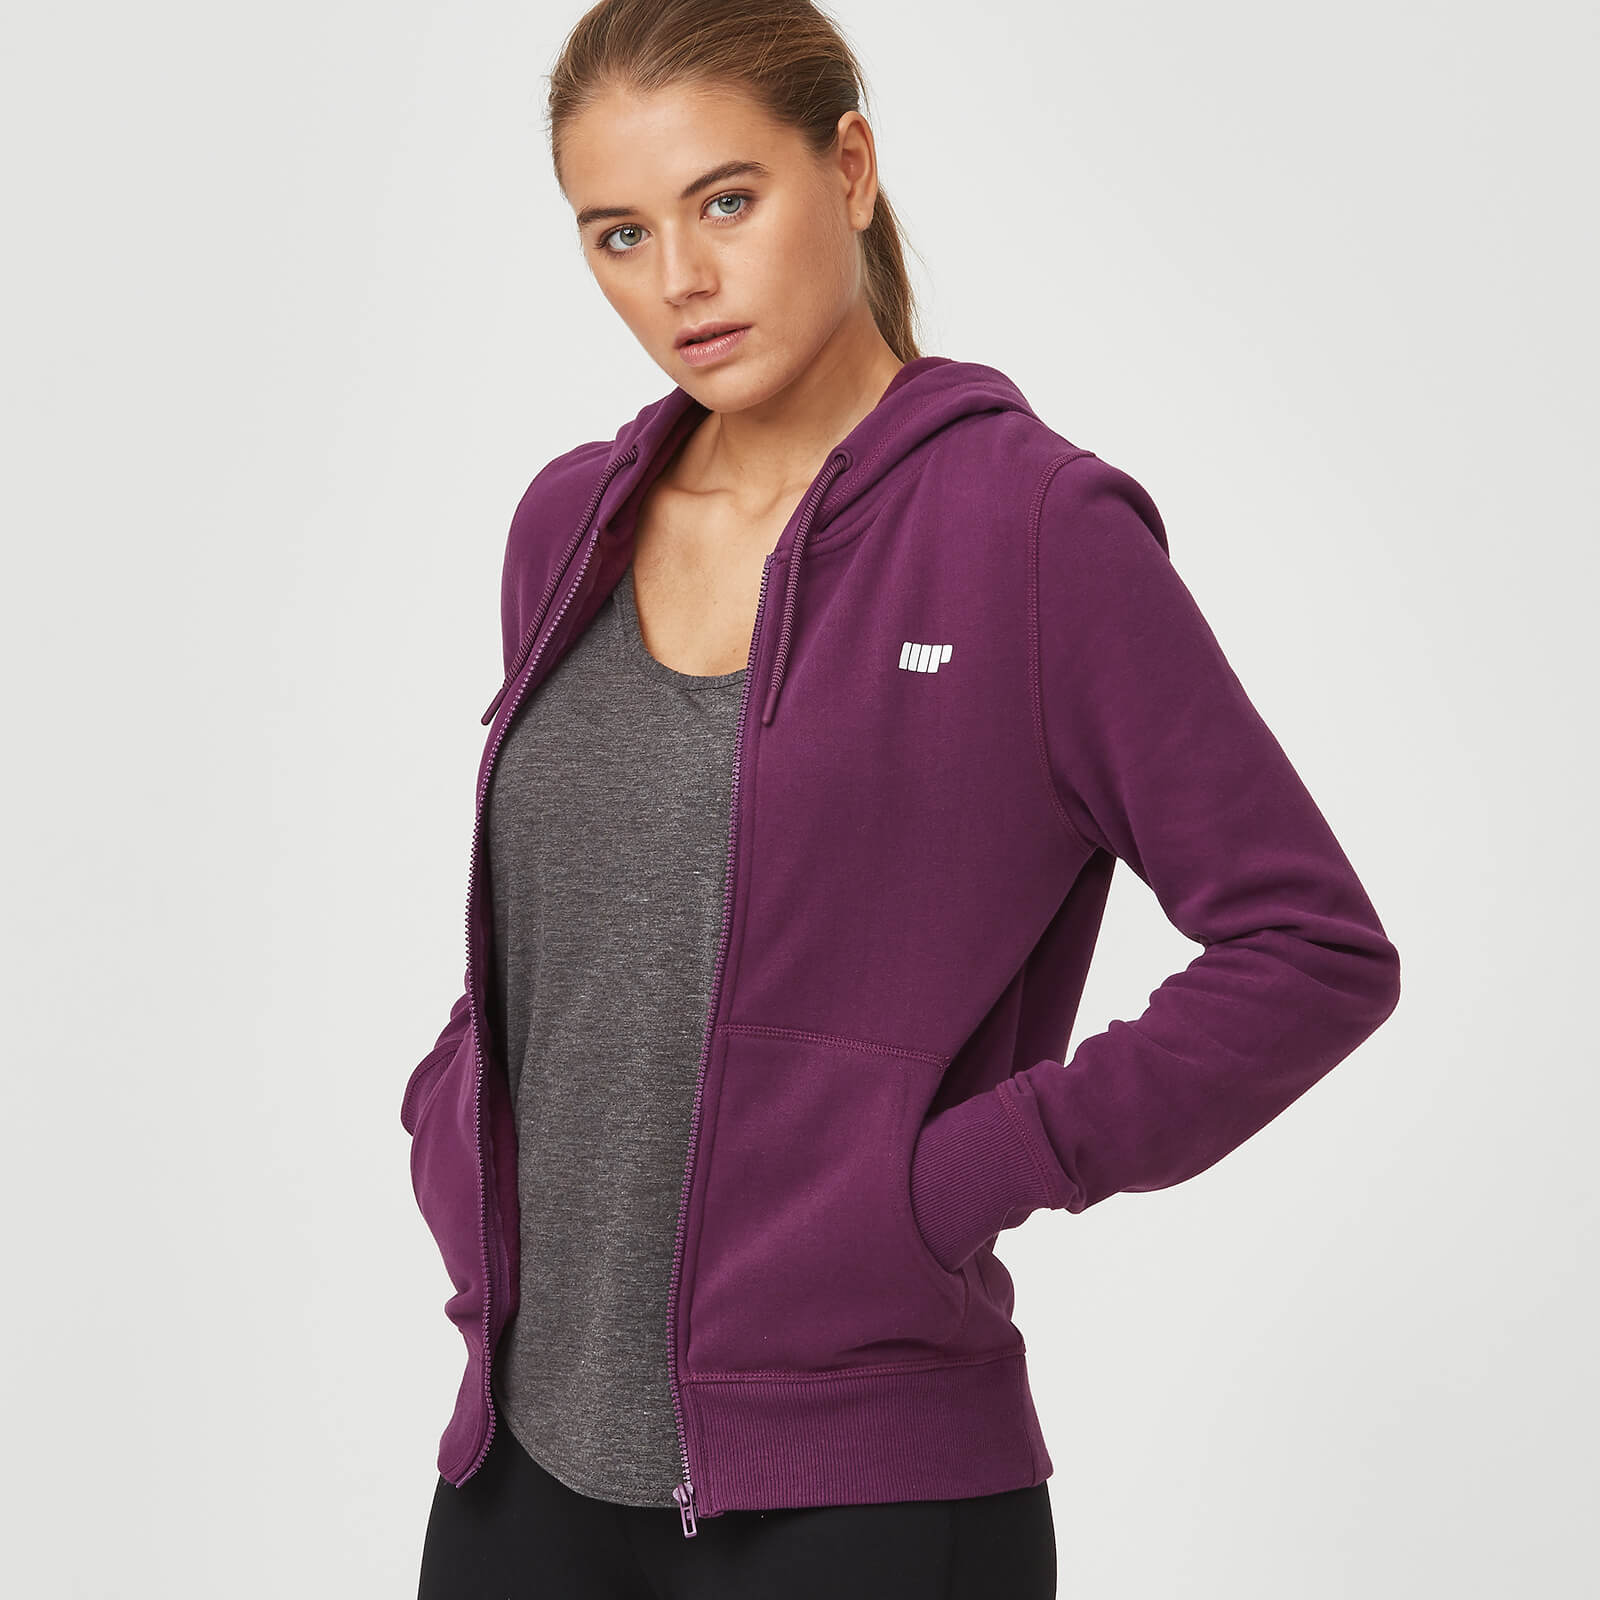 Myprotein Tru-Fit Zip Up Hoodie - Plum - XS